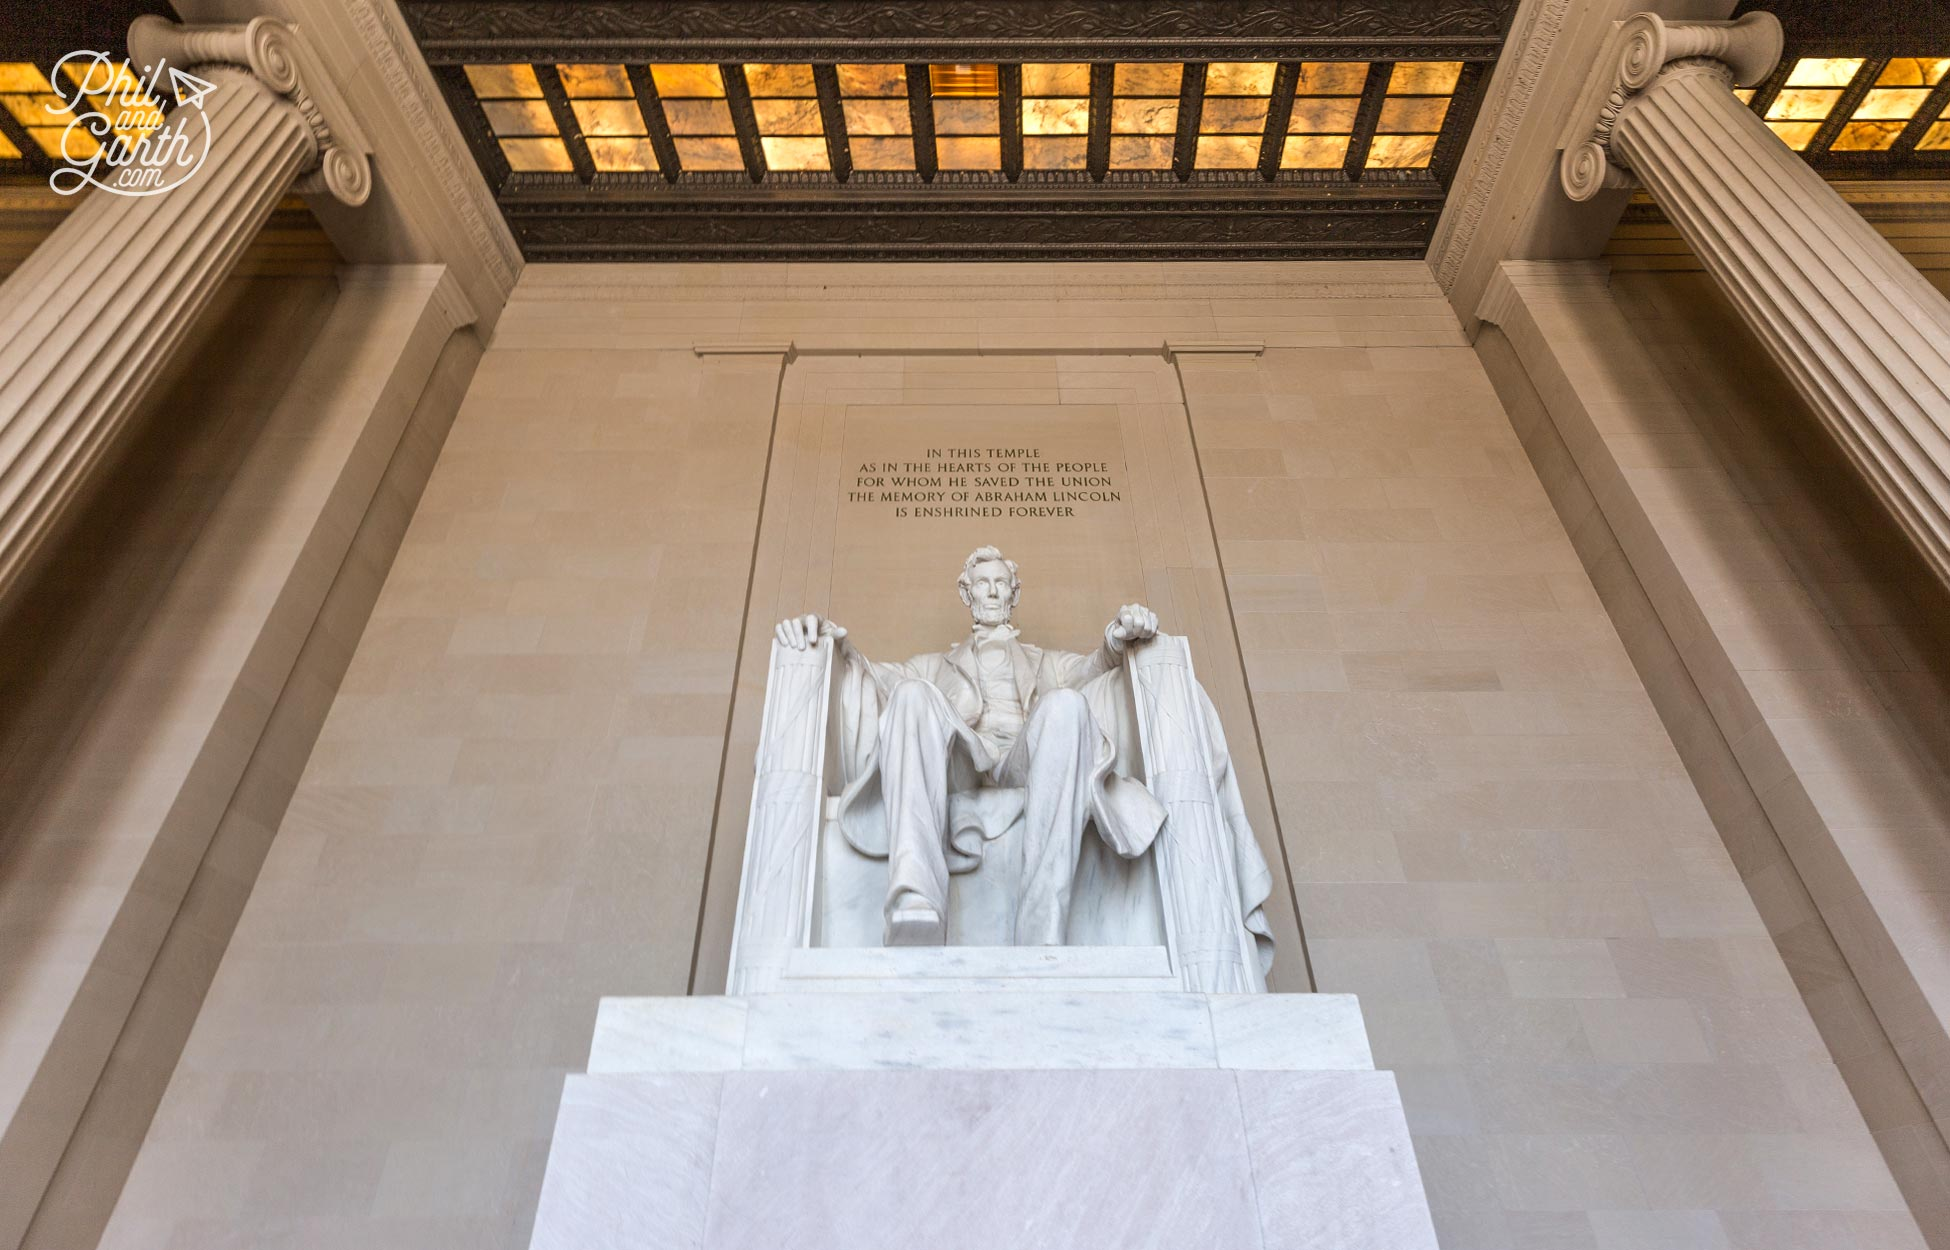 Abraham Lincoln 'Honest Abe' stands 5 metres tall